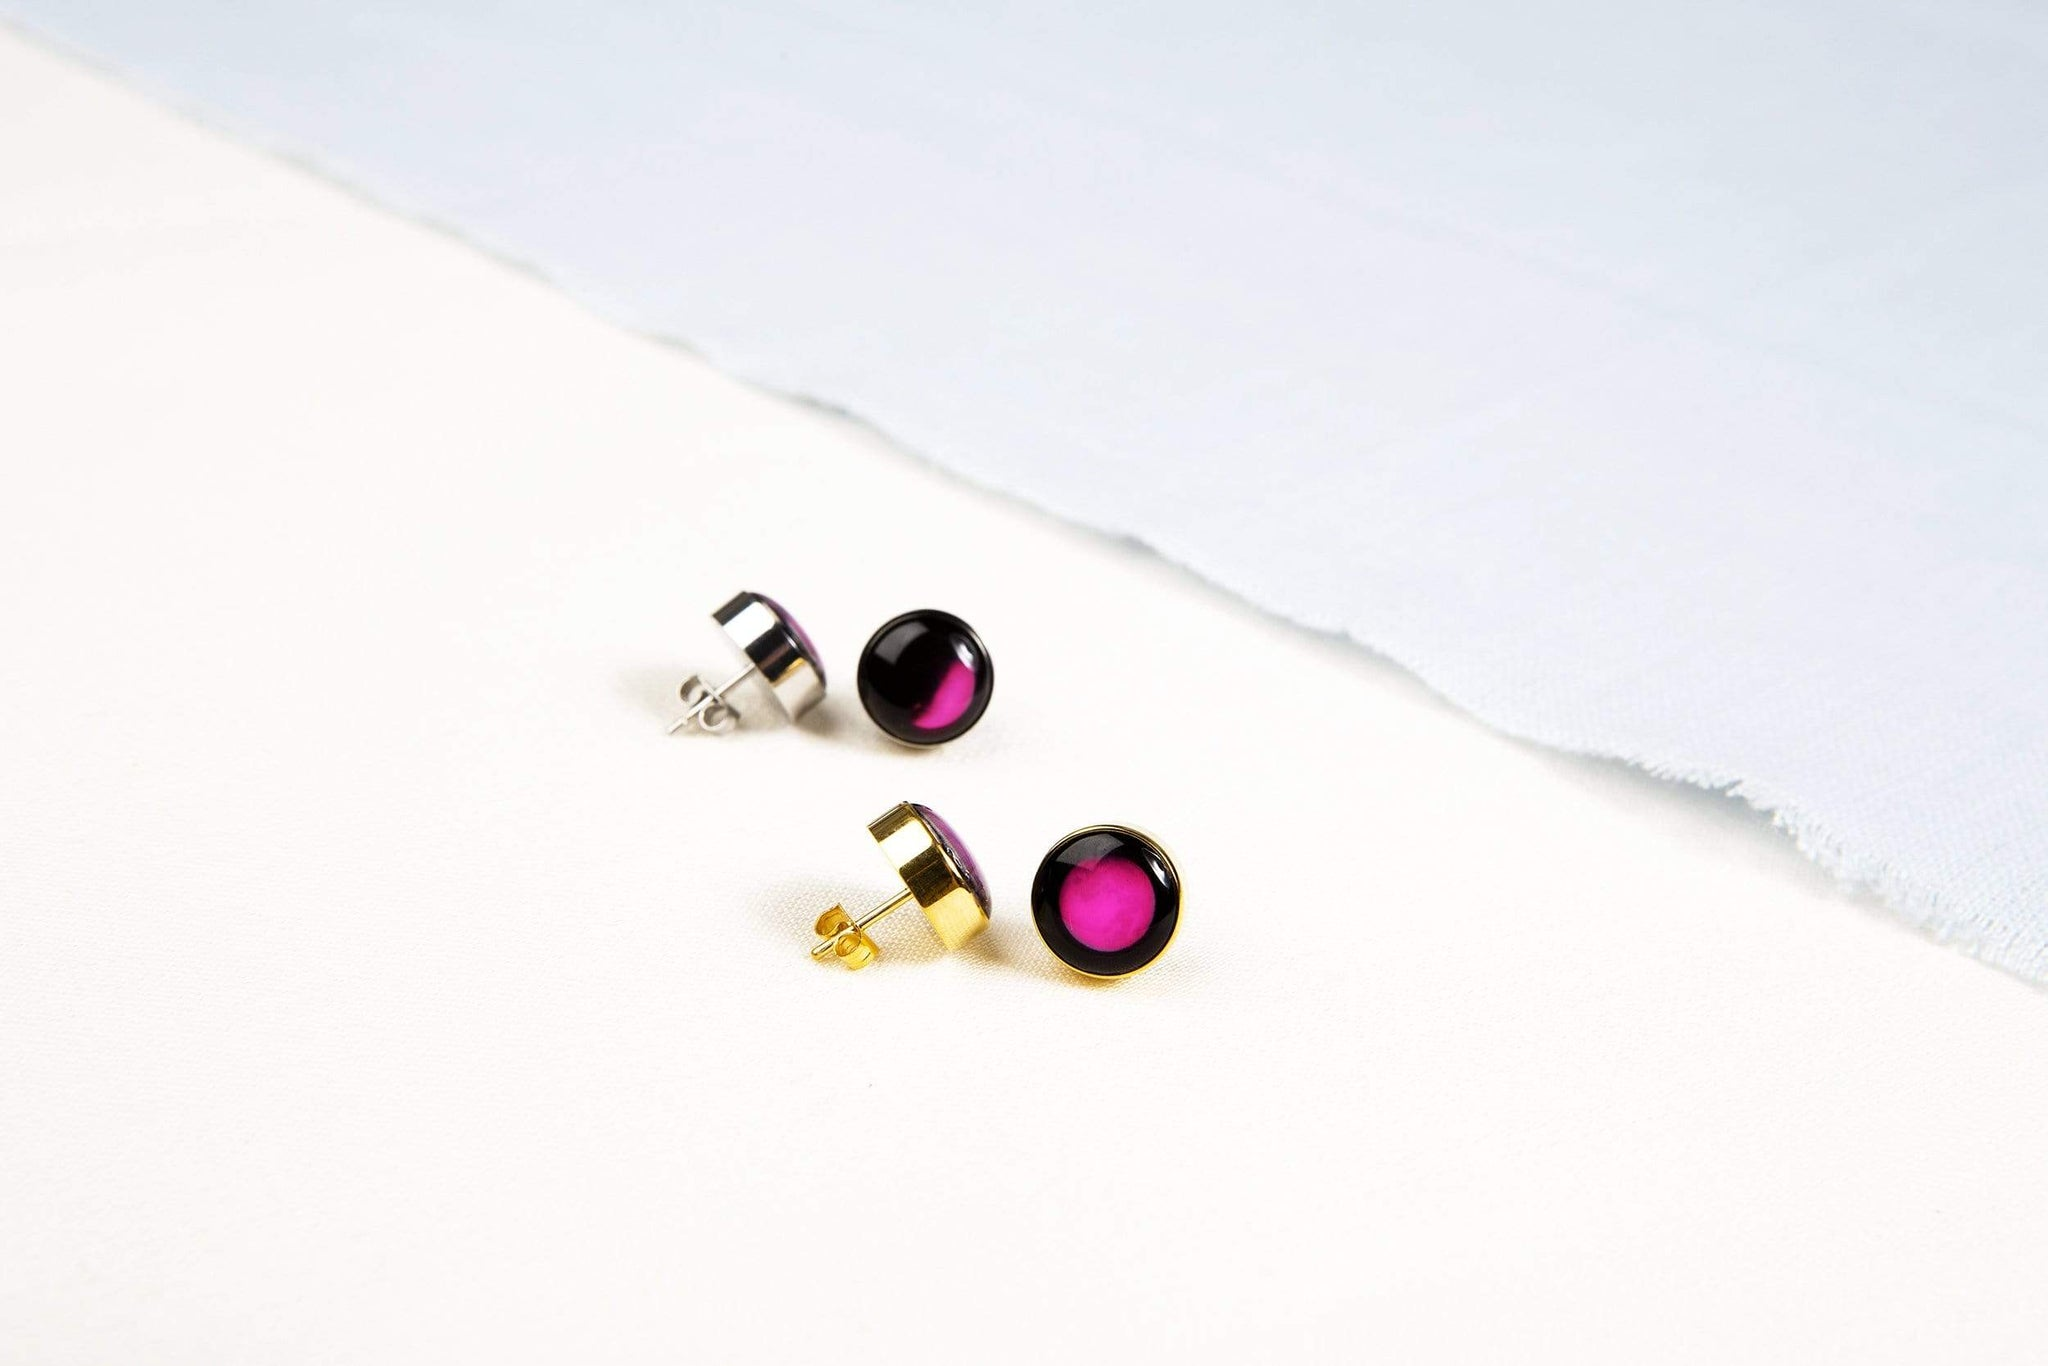 Pink Moon - Moonshine Stud Earrings in Stainless Steel